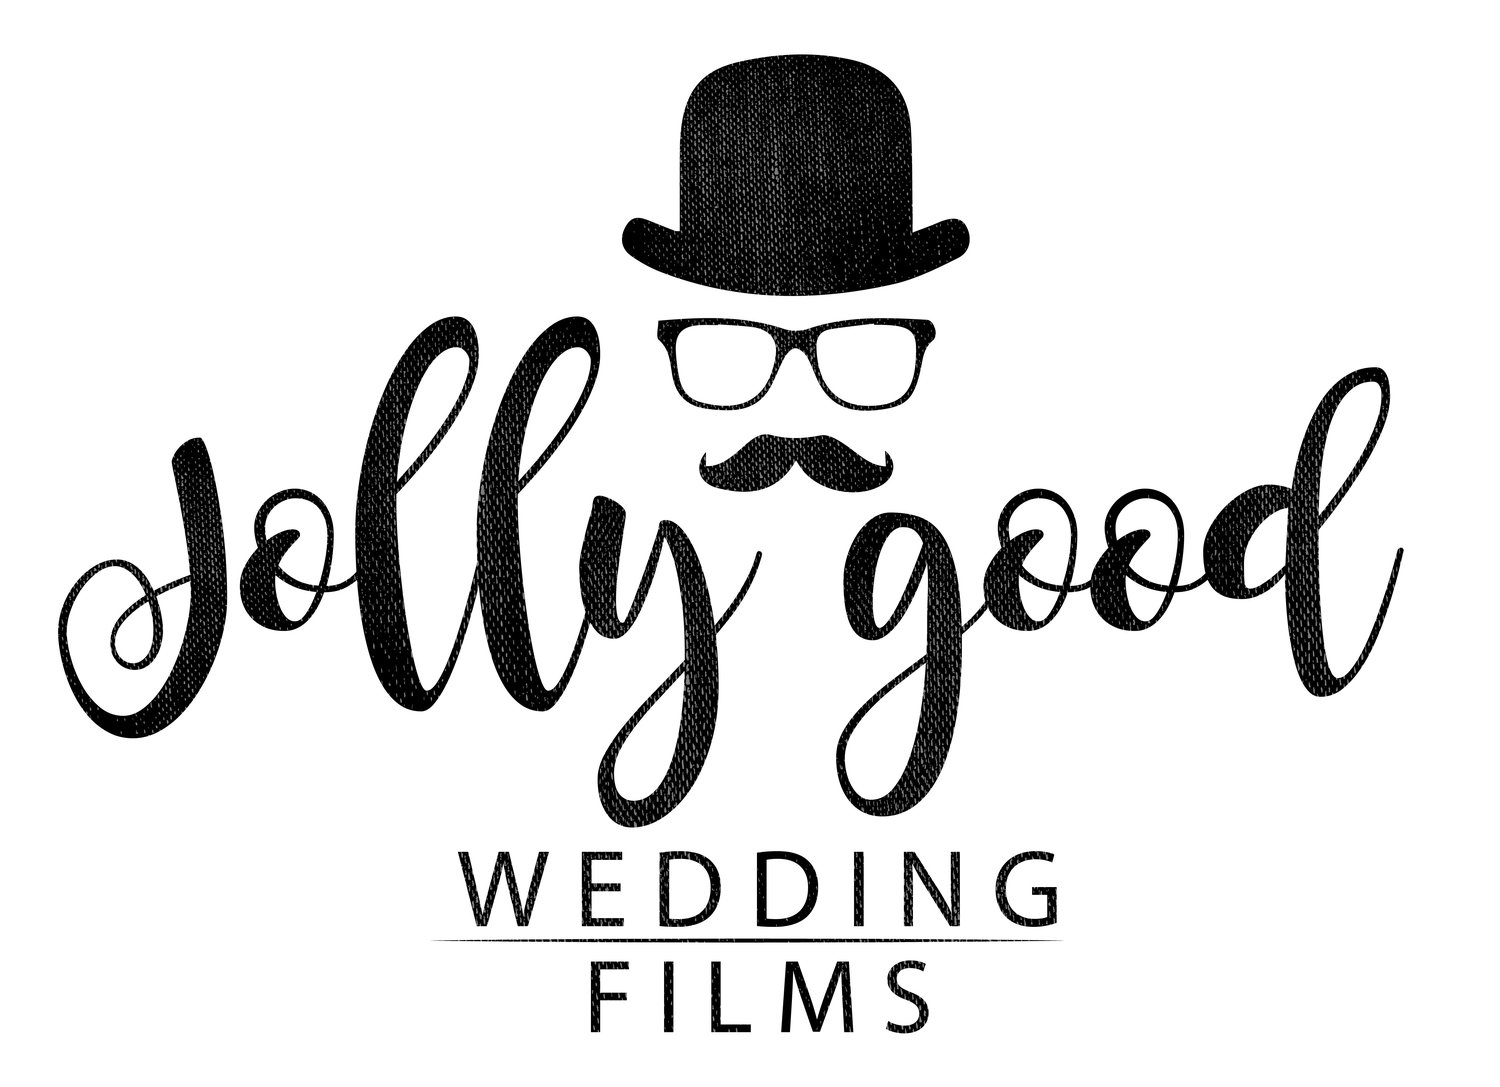 Bespoke, creative wedding films - Capturing your day from start to finish.